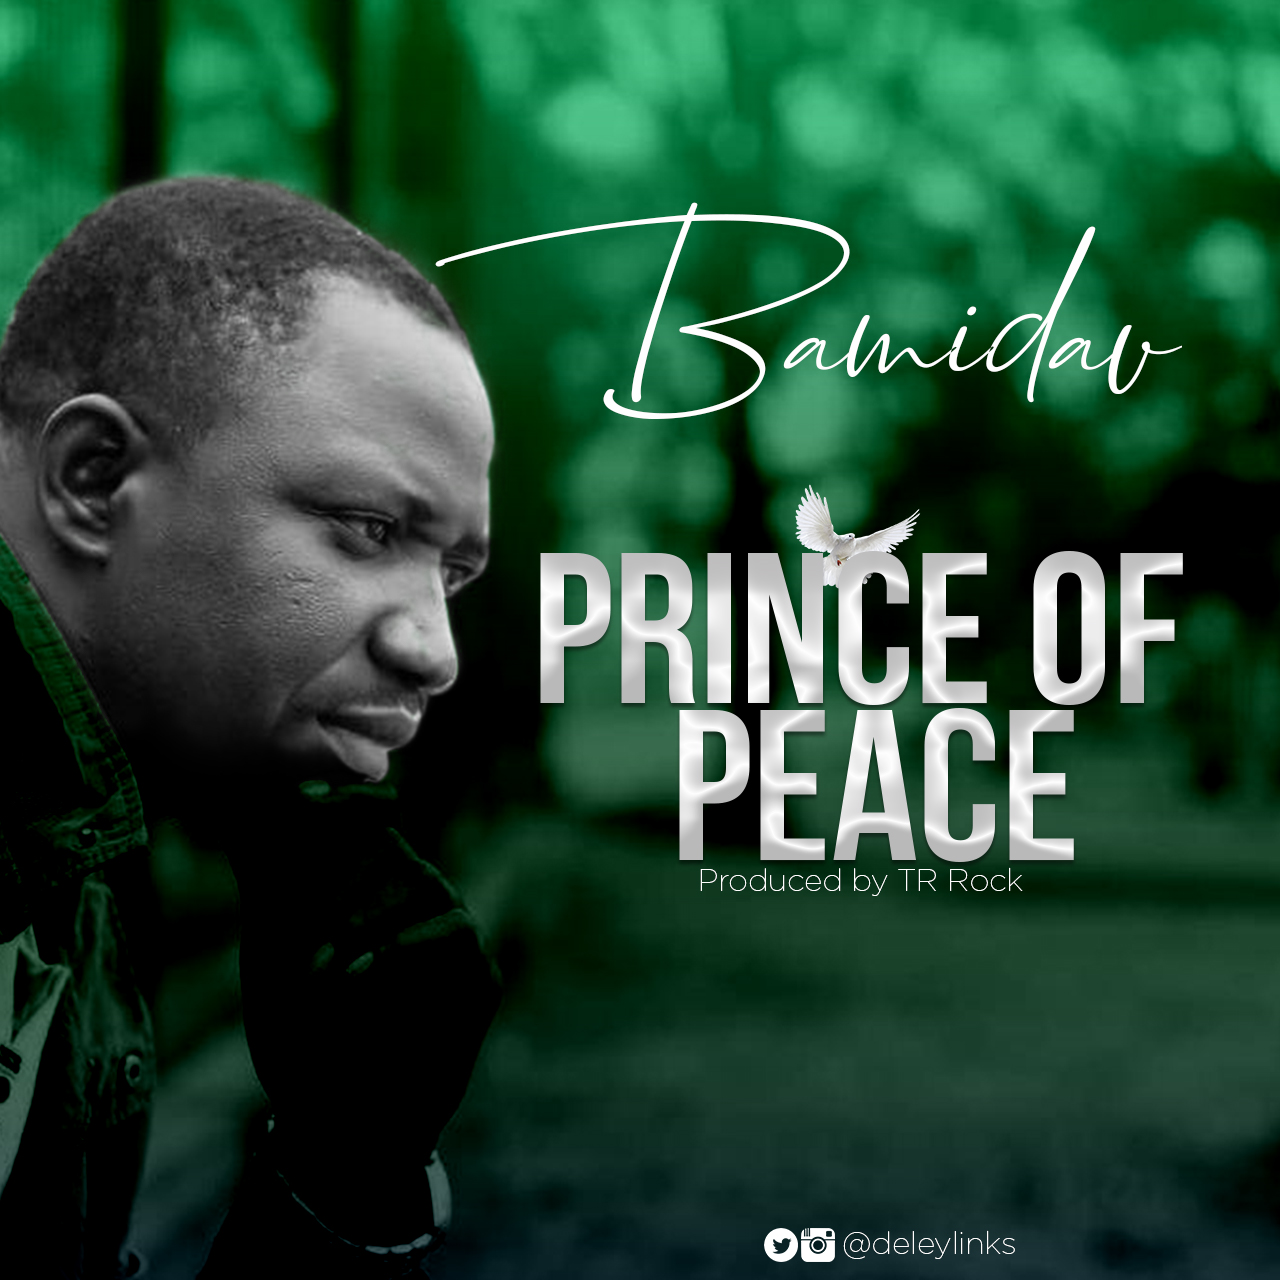 Bamdav Peace Of Peace